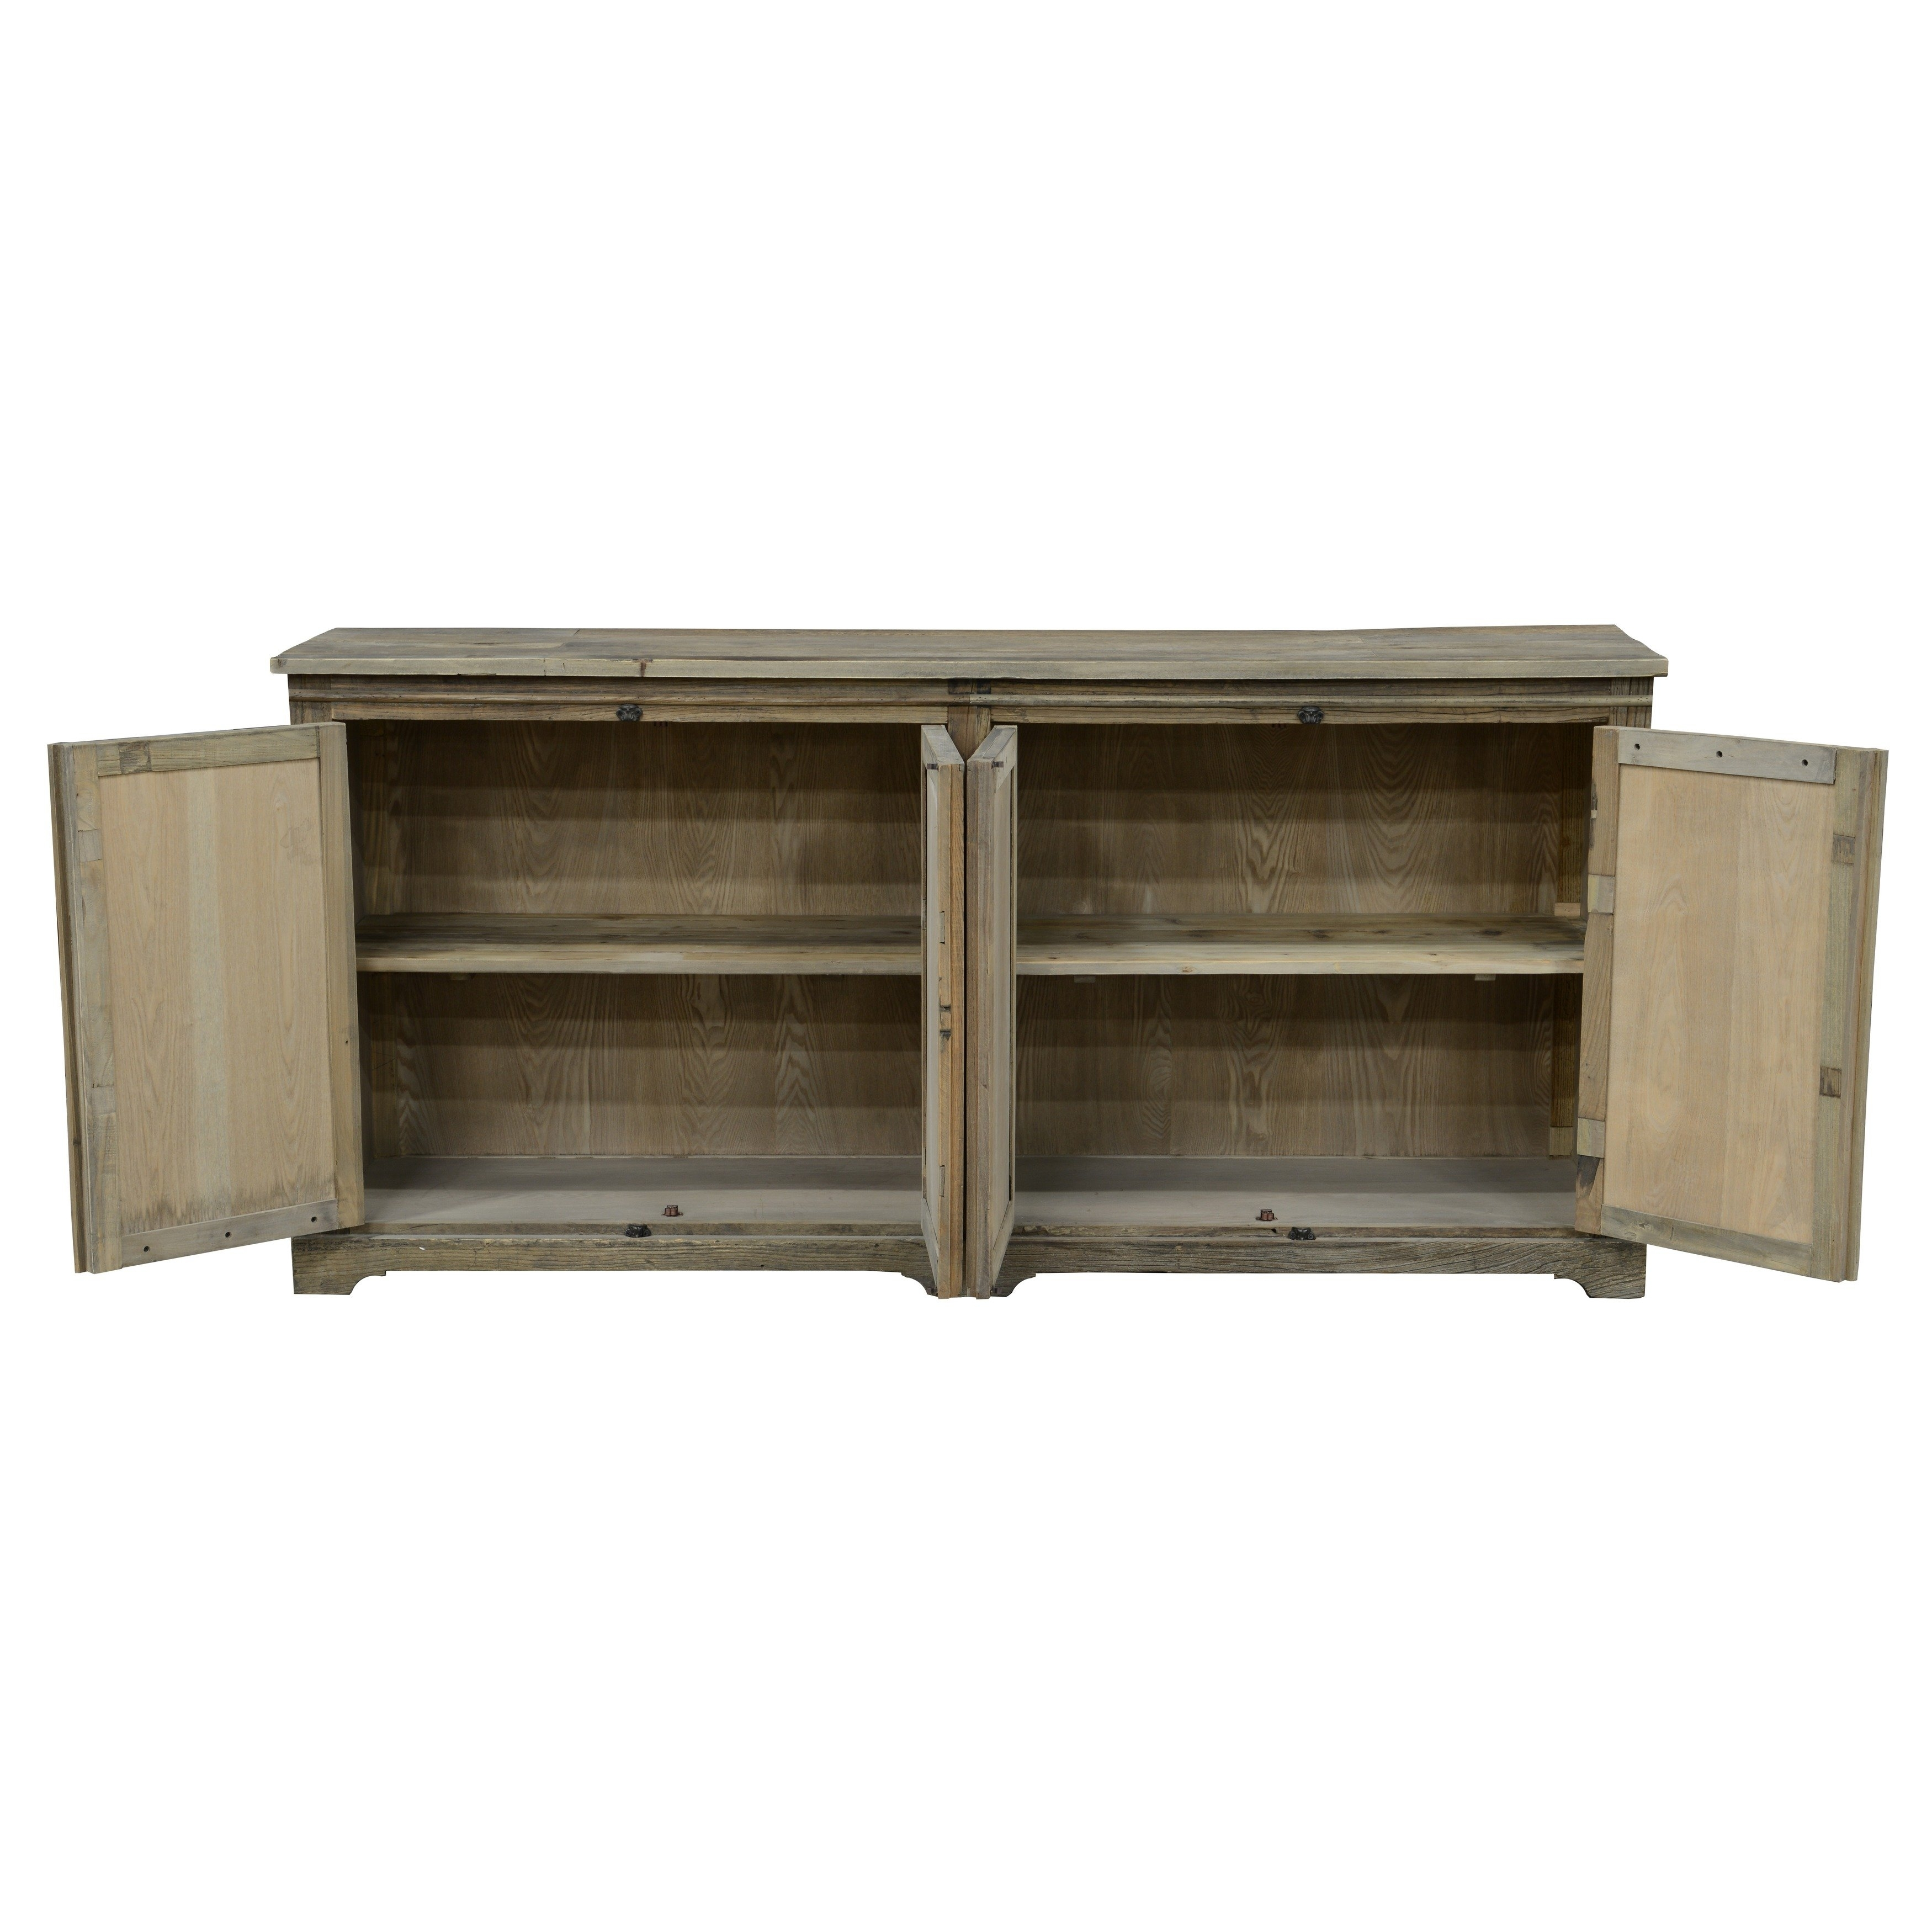 Shop Bradley Reclaimed Wood Mirrored 78-Inch Sideboardkosas Home in Natural Oak Wood 78 Inch Sideboards (Image 20 of 30)